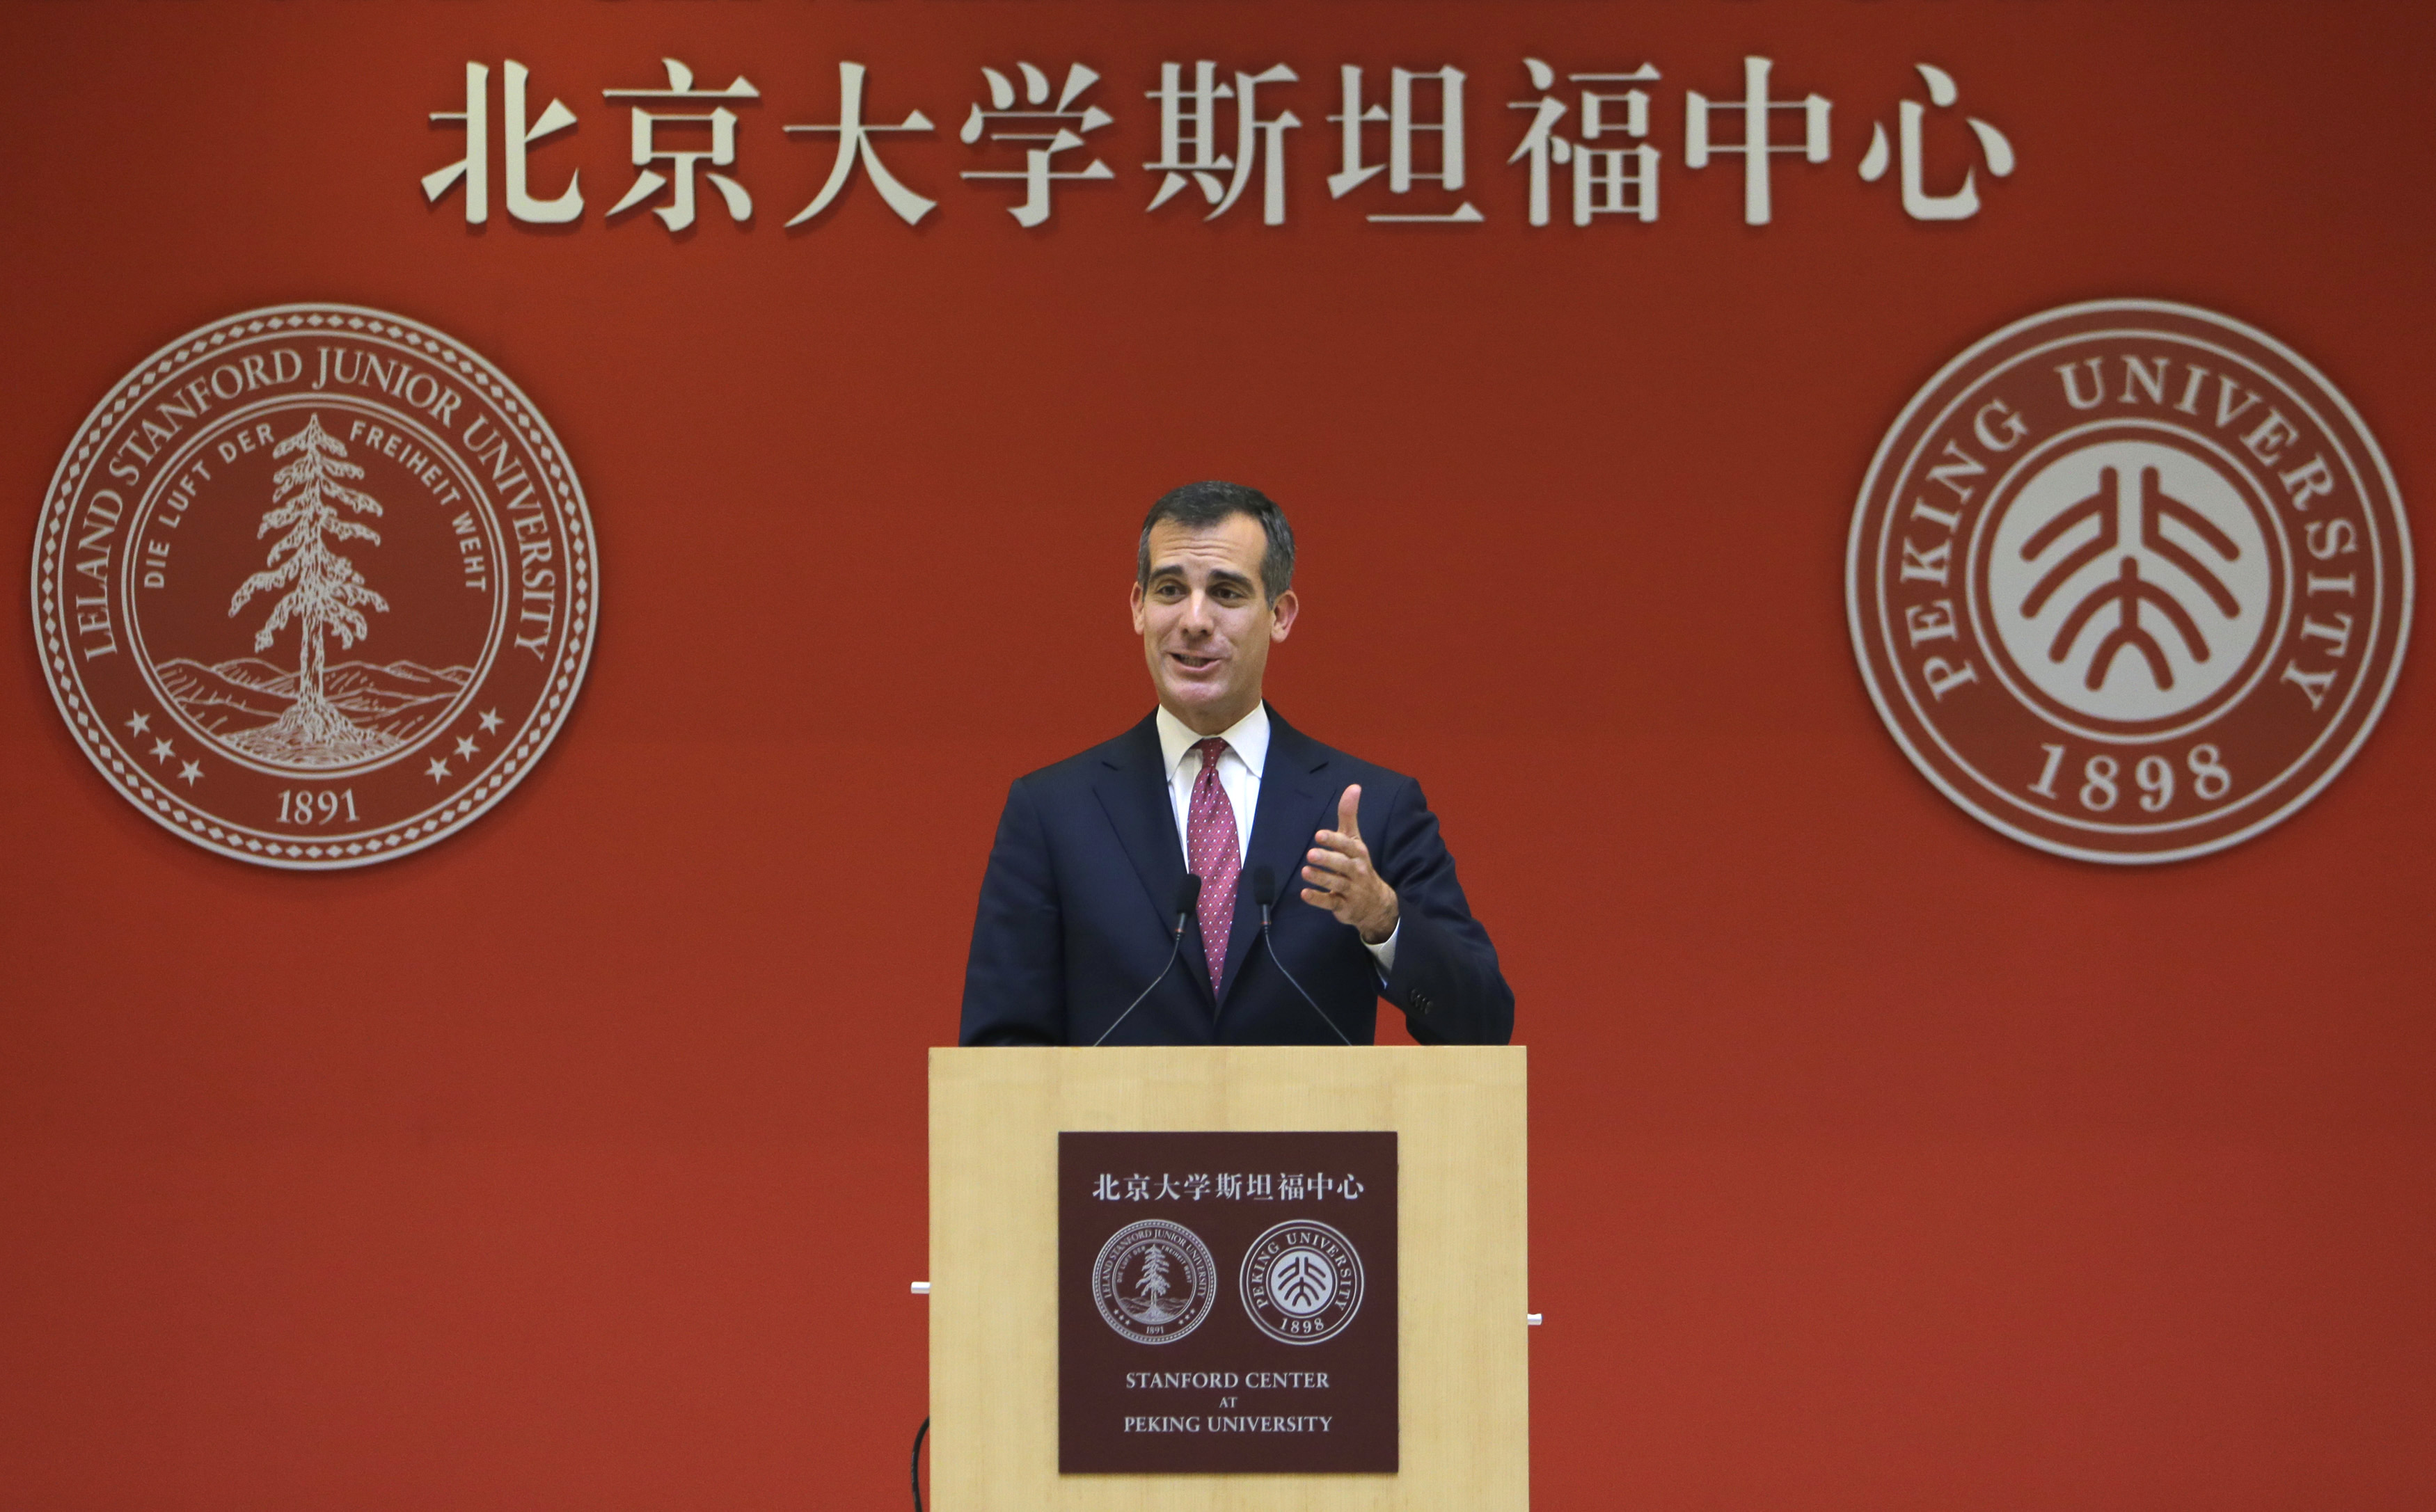 Los Angeles Mayor Eric Garcetti speaks during a conference on the challenges and opportunities for sustainable development in Beijing